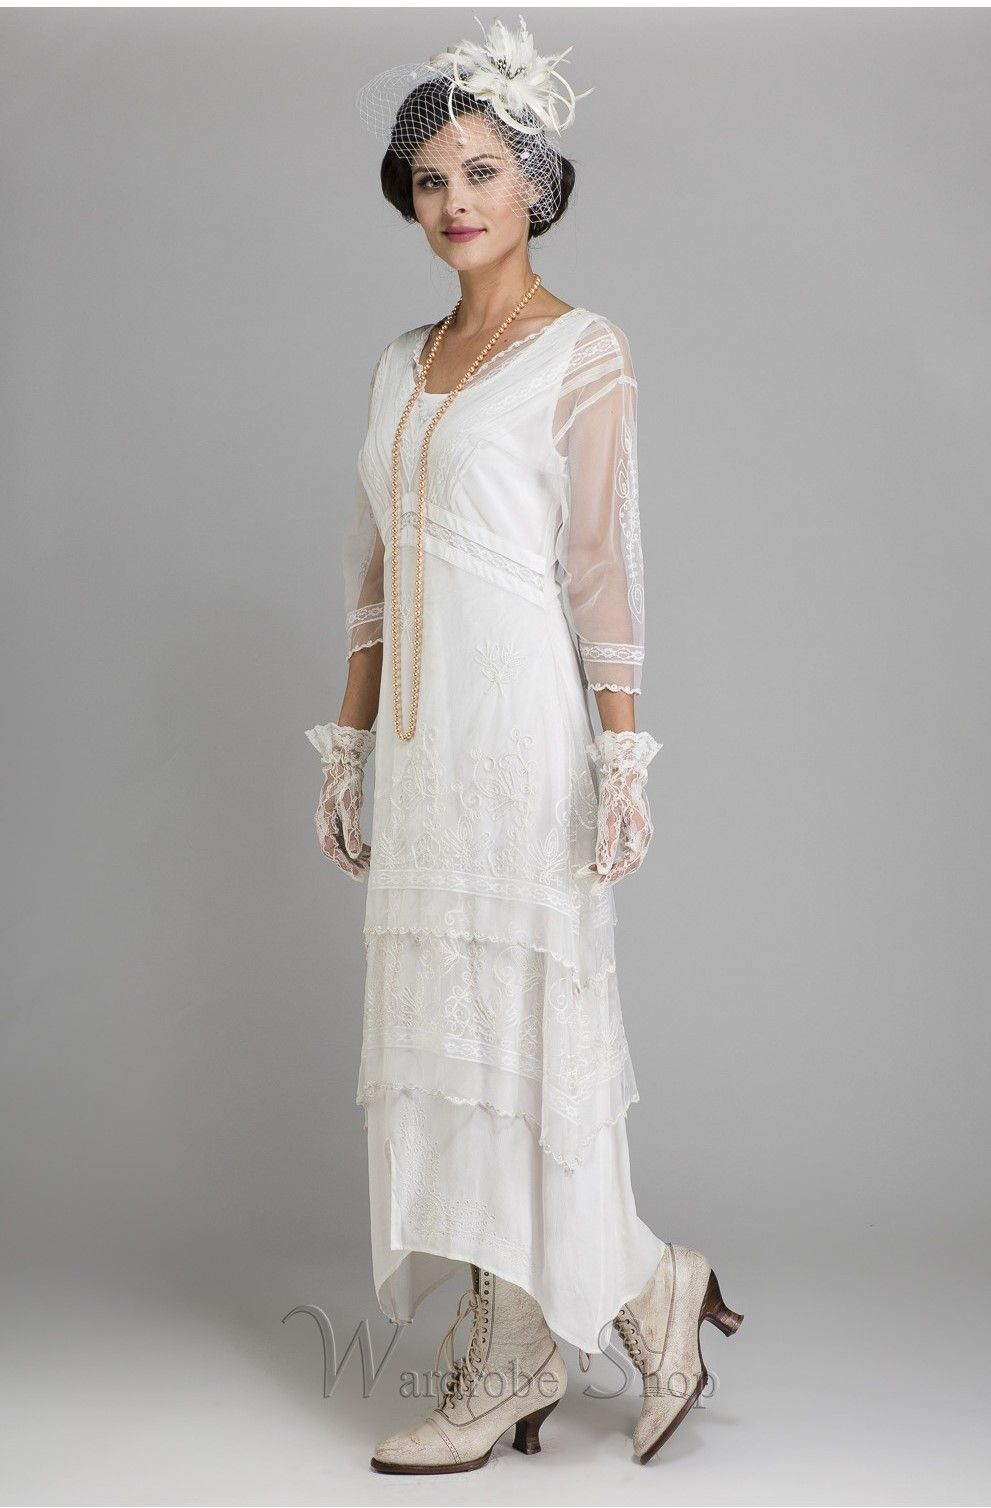 Vintage Titanic Tea Party Dress in Ivory by Nataya in 2020